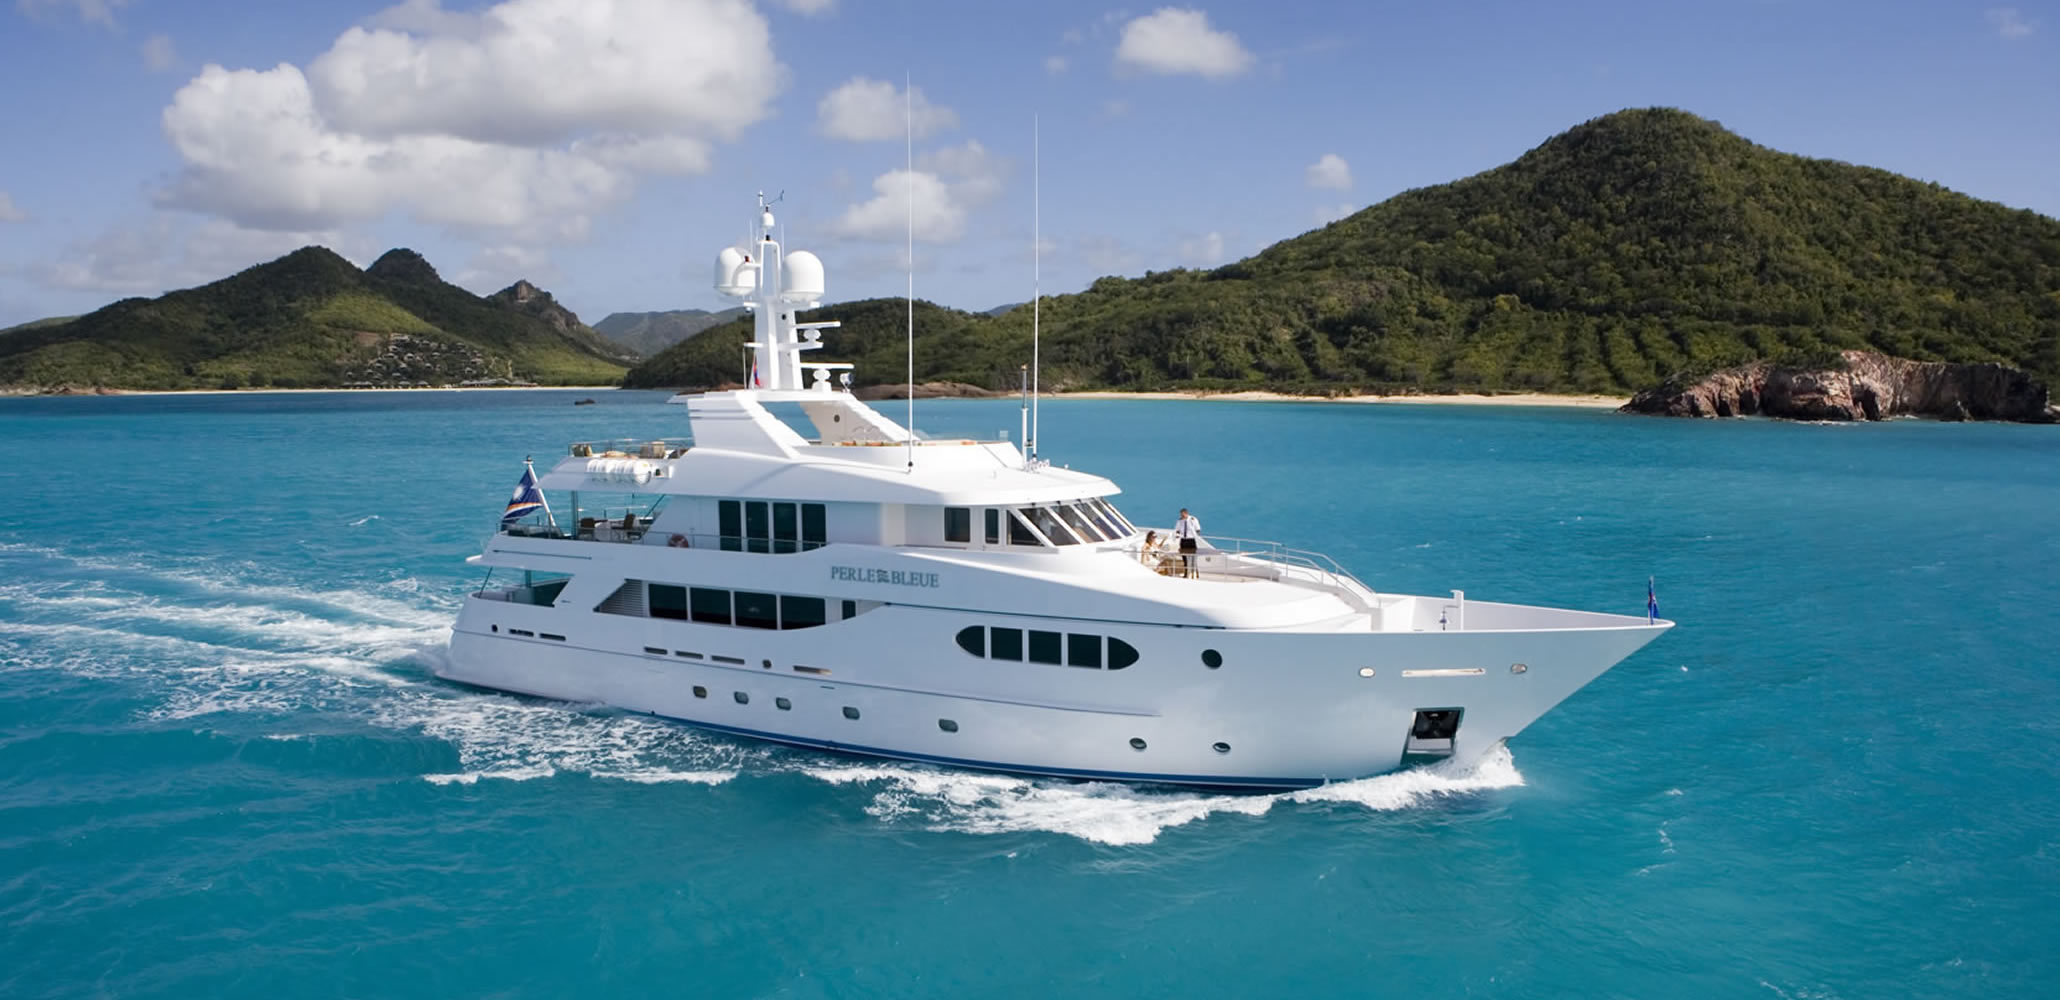 hakvoort shipyards we know what it takes to build great